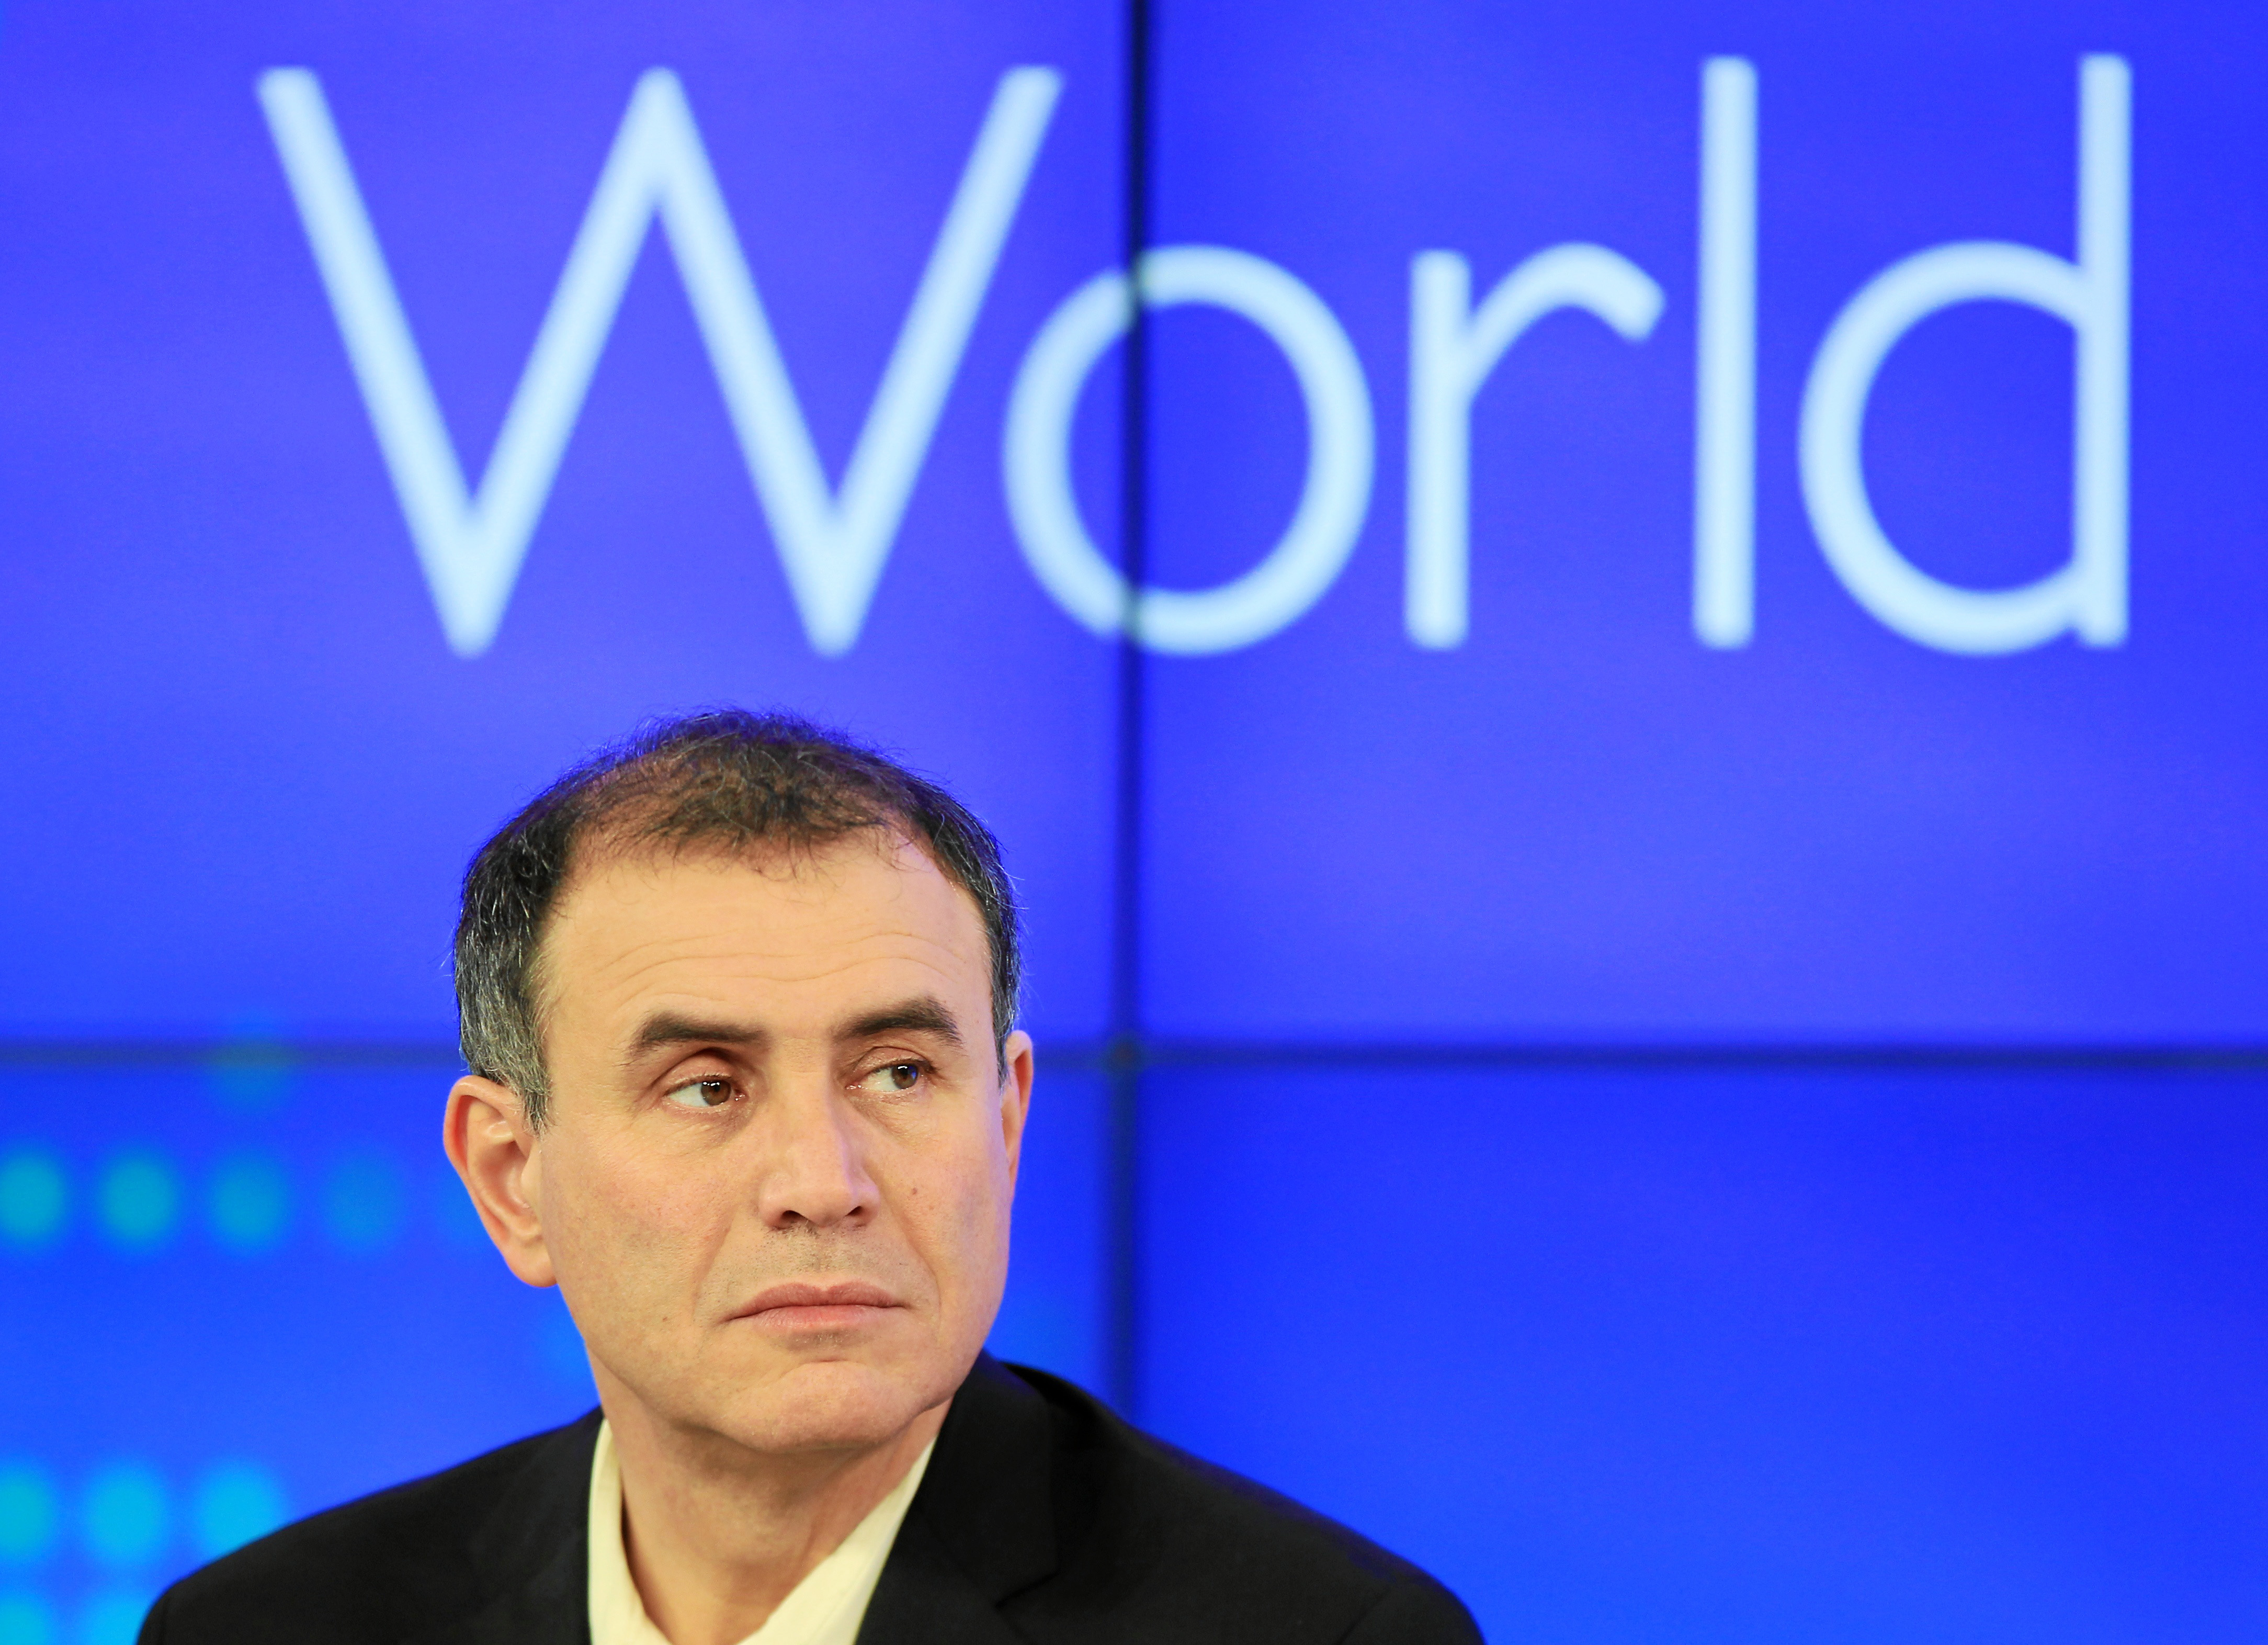 Fixing Capitalism: Nouriel Roubini